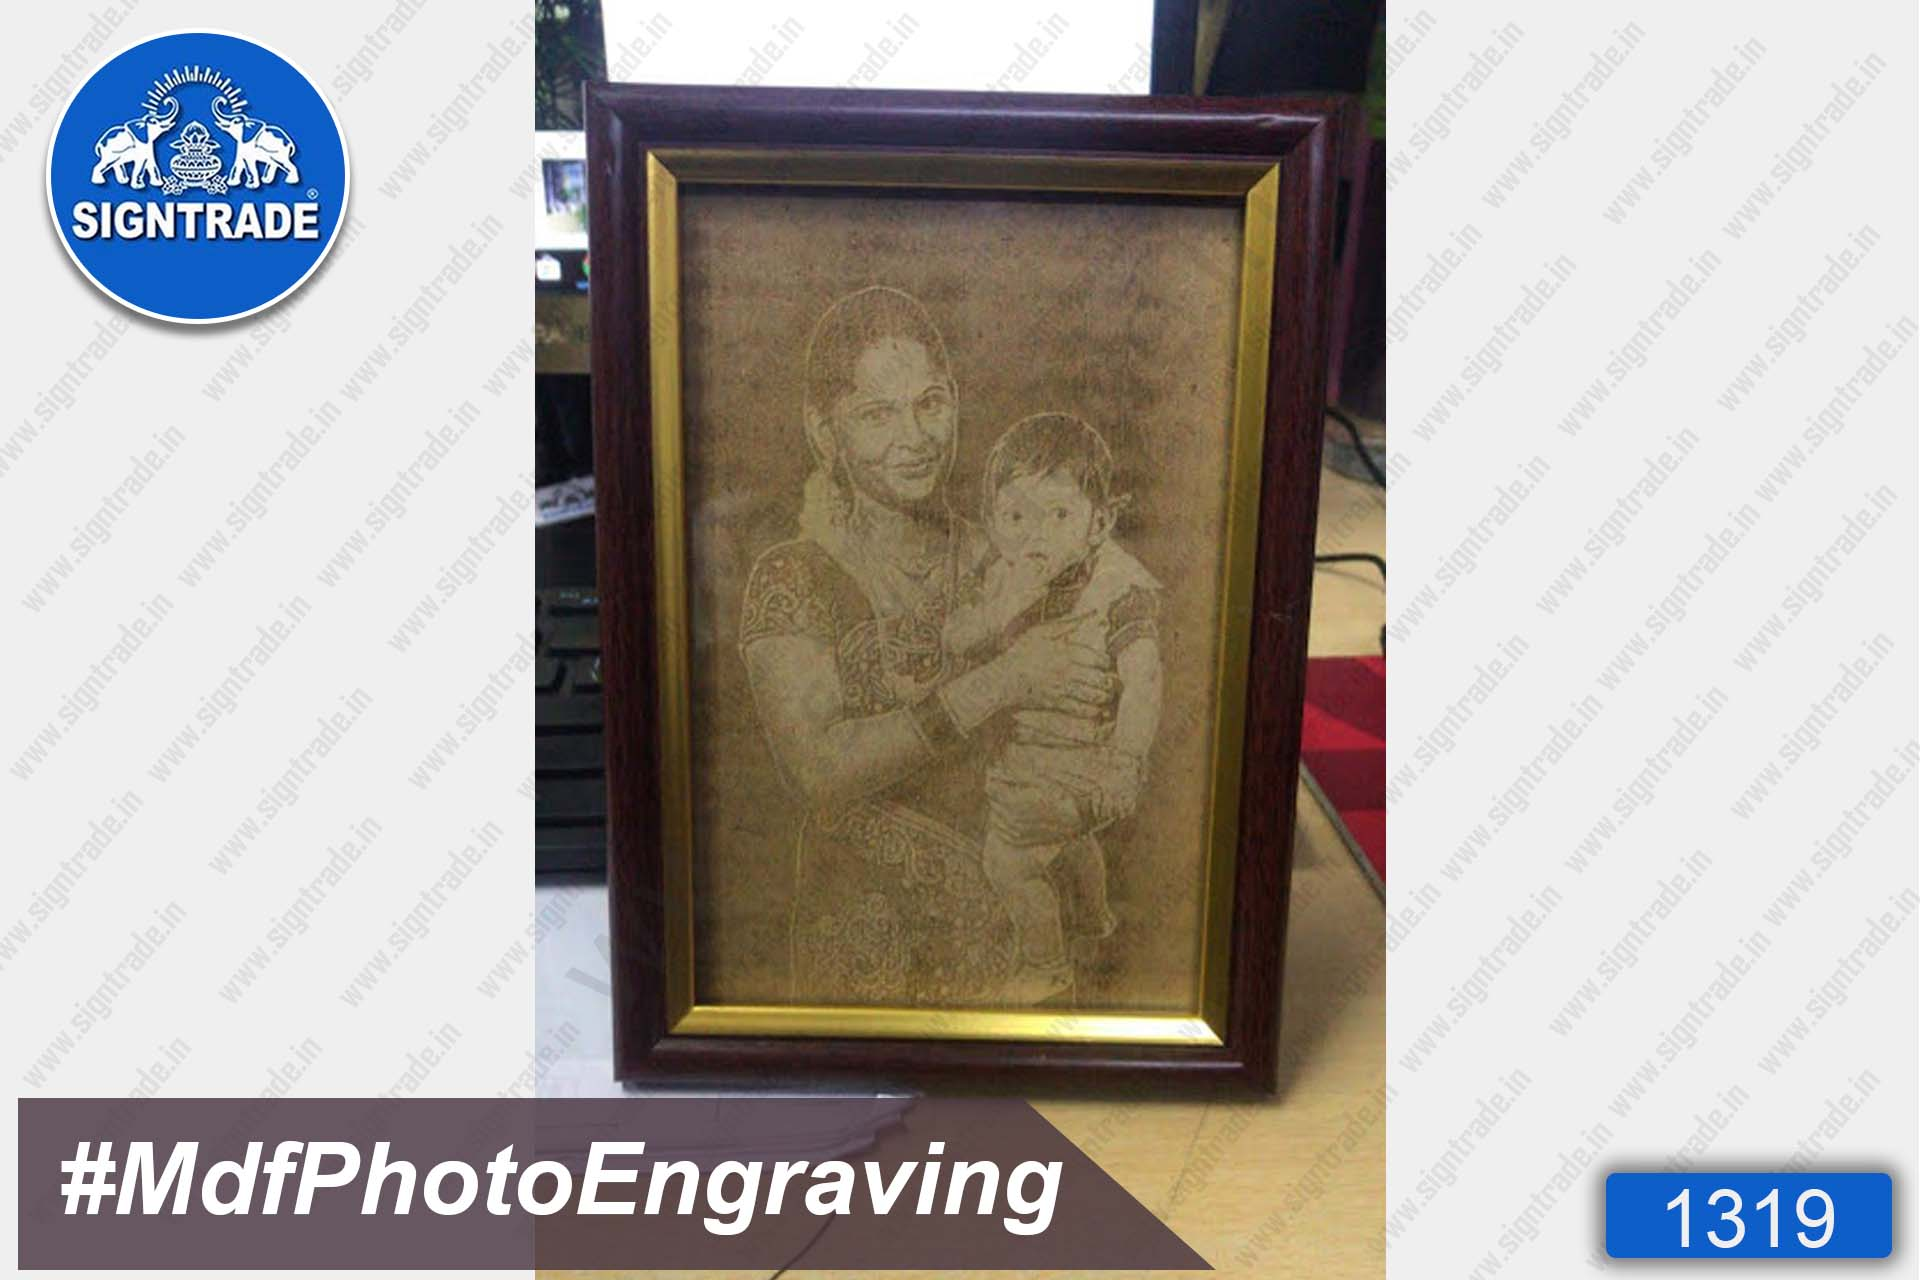 MDF Photo Frame with Engraving